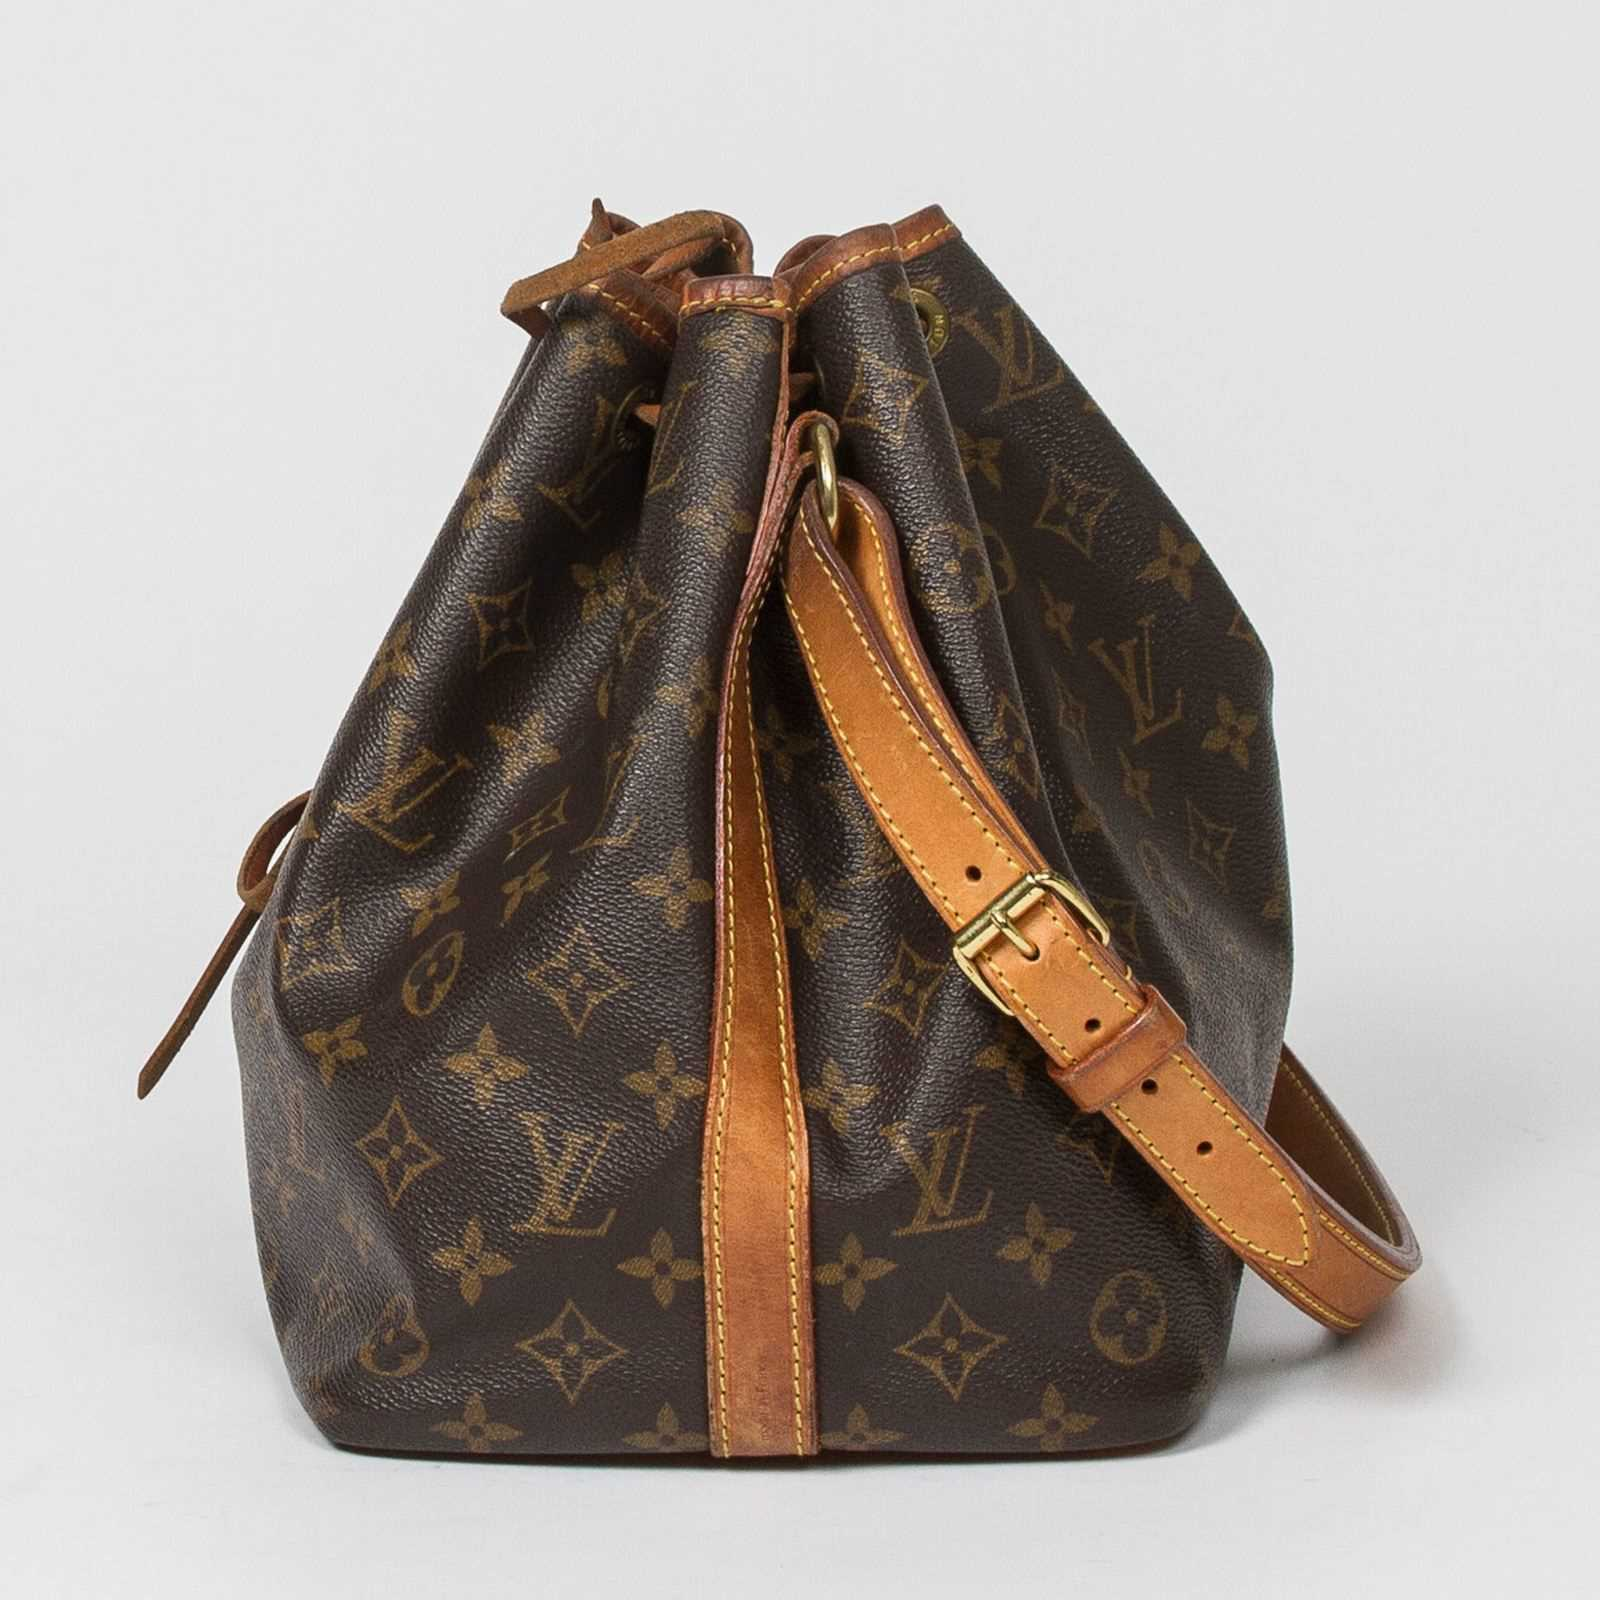 713807c970 Sac Seau Louis Vuitton Noe   Stanford Center for Opportunity Policy ...